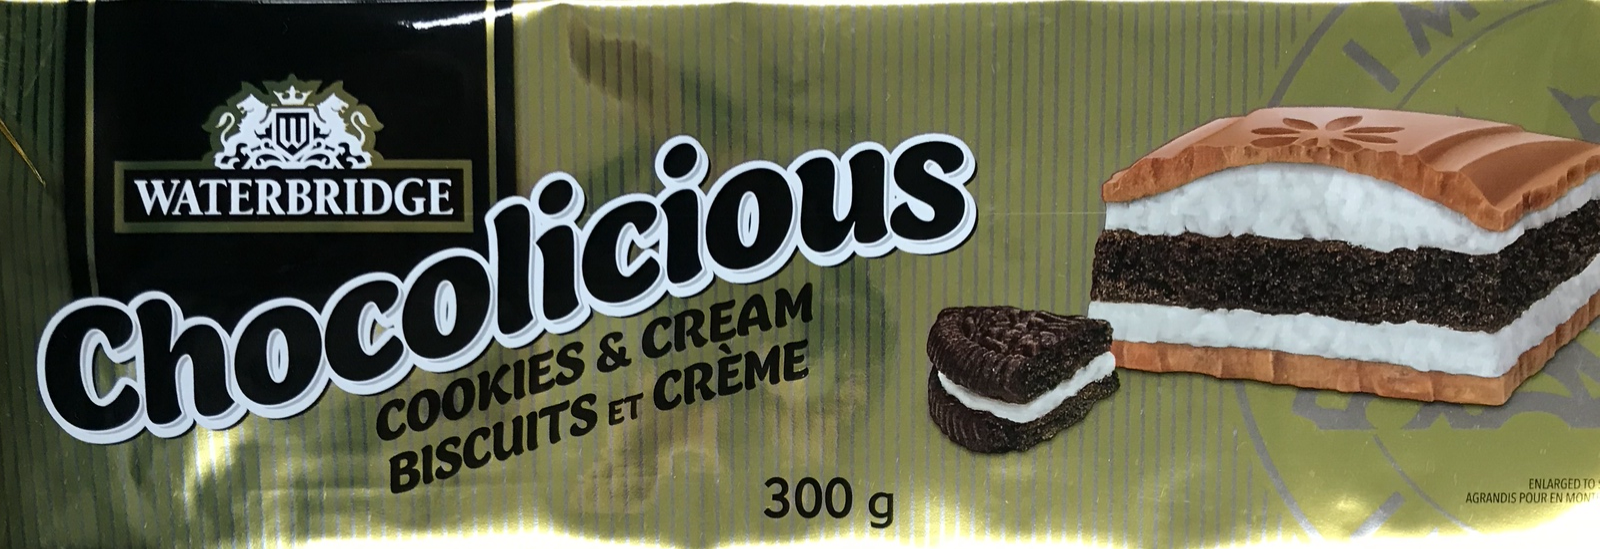 Primary image for Waterbridge Chocolicious Cookies & Cream Chocolate 8 x 300g bars Canadian